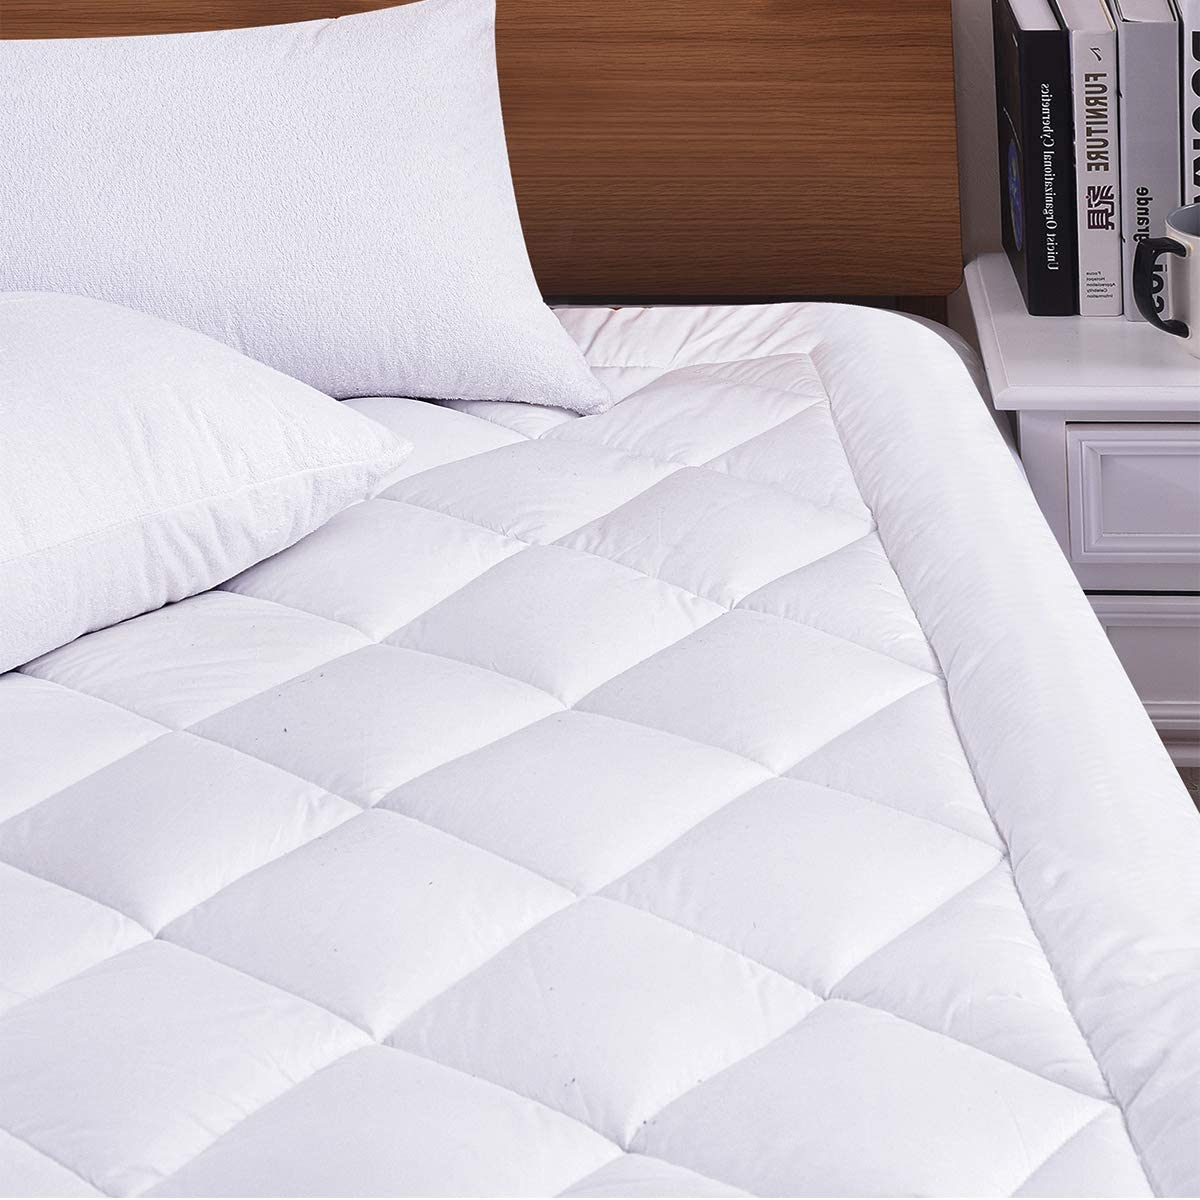 Hokly Queen Size Mattress Pad Hypoallergenic Cover Cooling 300TC 100% Cotton Bed Topper with Snow Down Alternative Filler (Fit to 8-21 Inches Thickness Mattress)